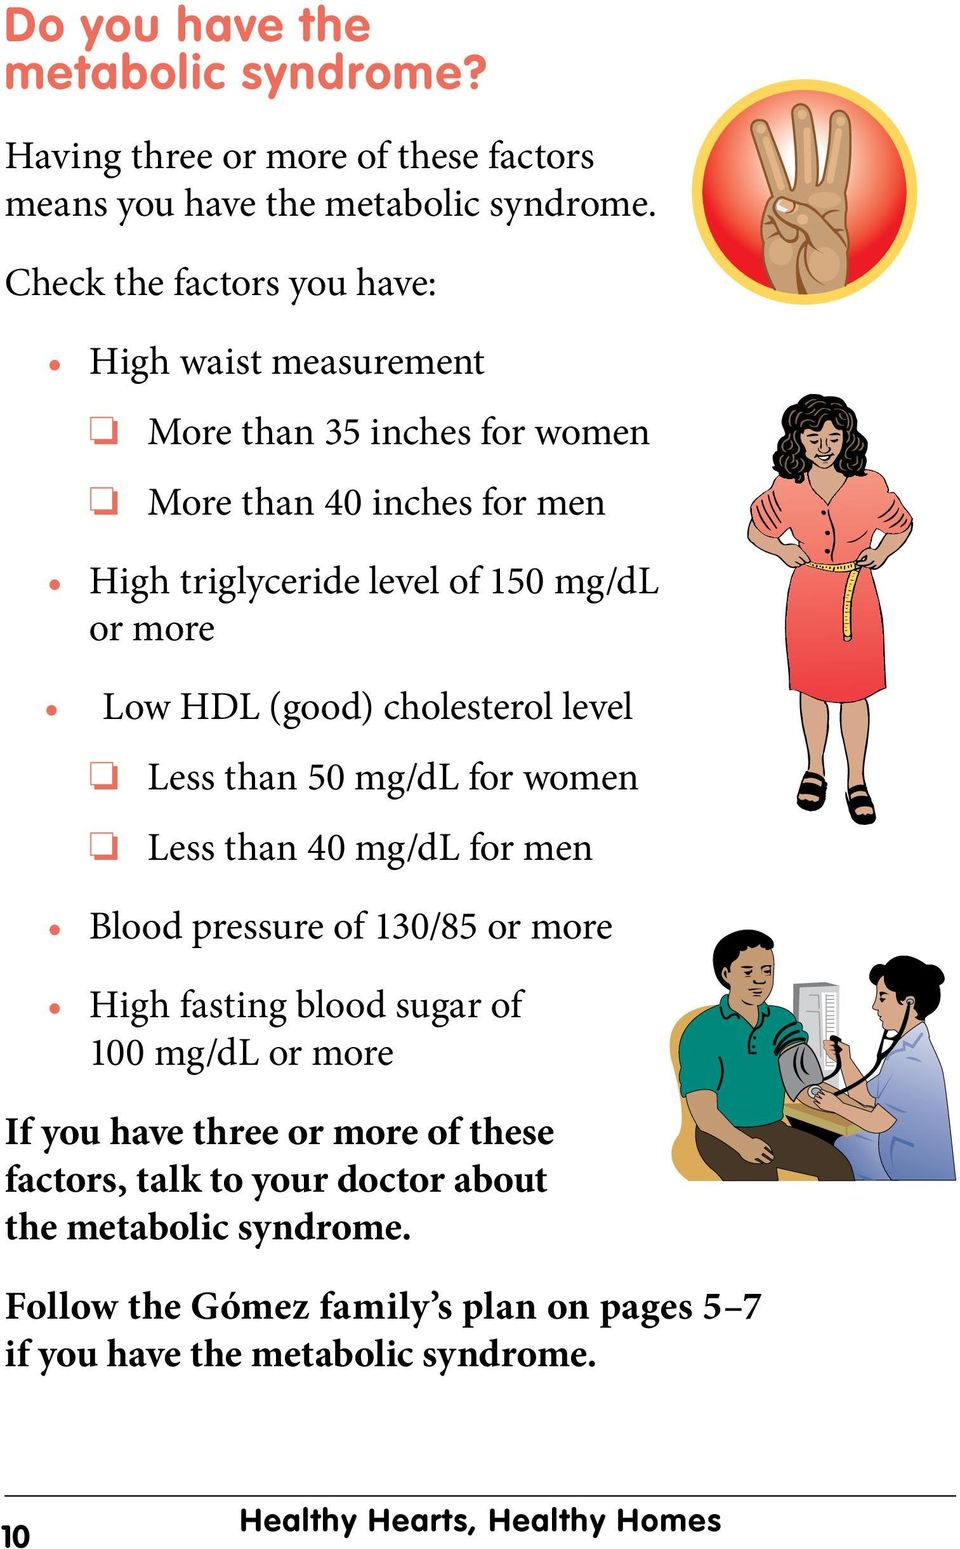 HDL (good) cholesterol level Less than 50 mg/dl for women Less than 40 mg/dl for men Blood pressure of 130/85 or more High fasting blood sugar of 100 mg/dl or